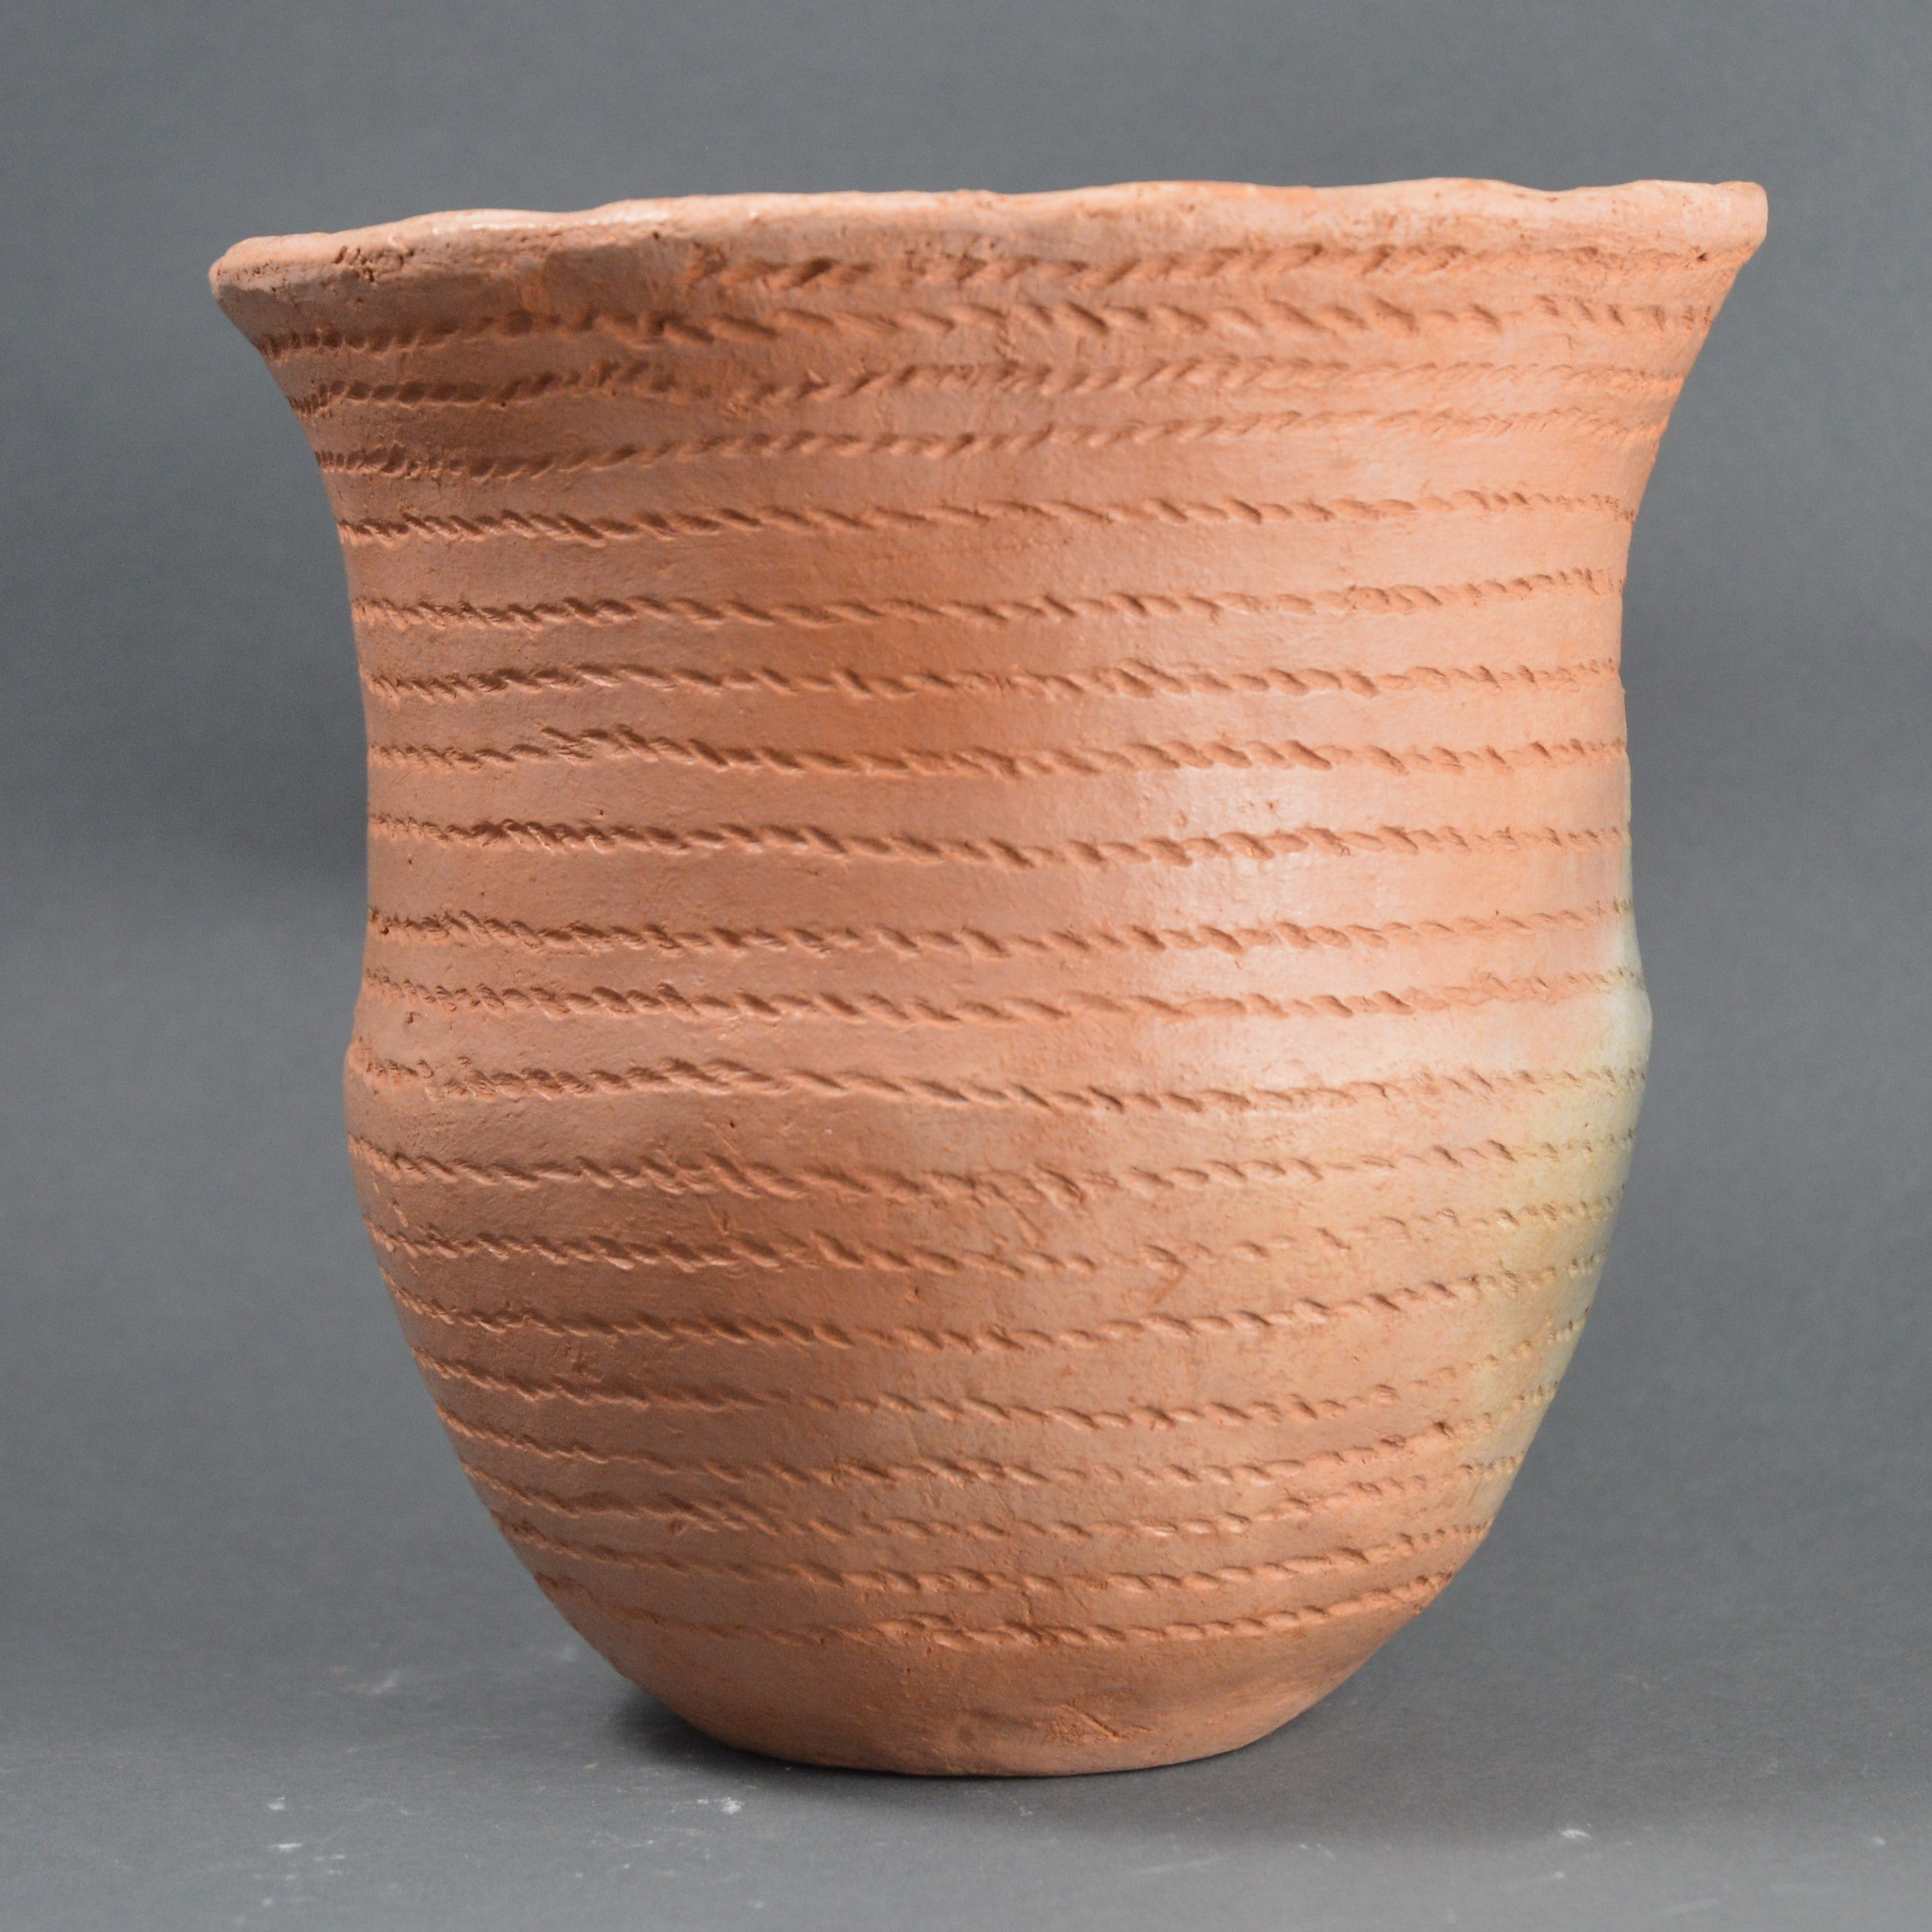 Bronze Age Beaker, Cord Decorated